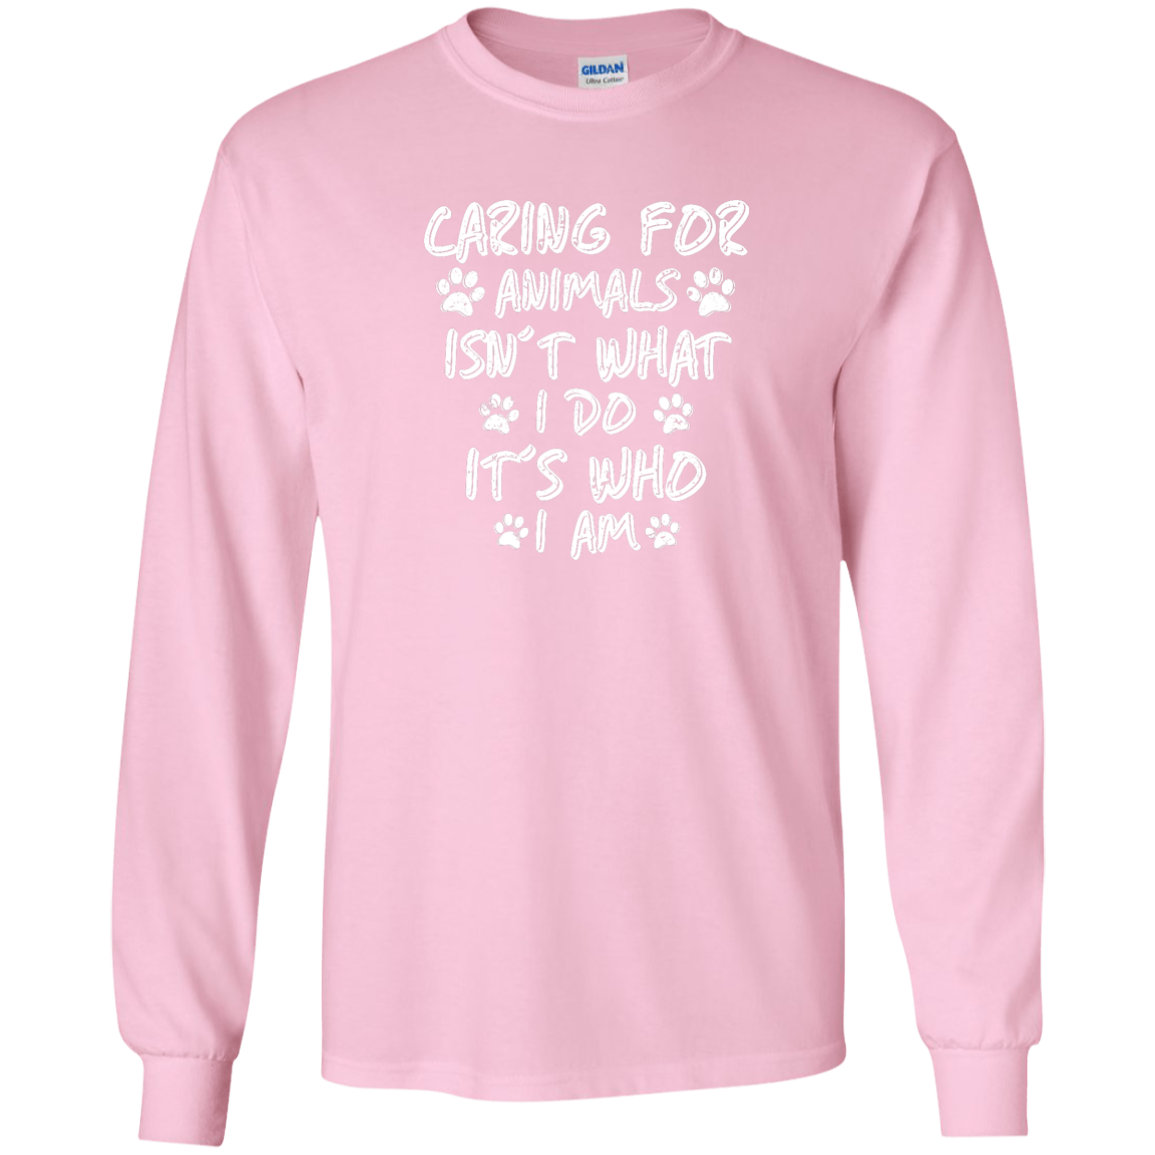 Caring For Animals - Long Sleeve T Shirt | Products | T ...